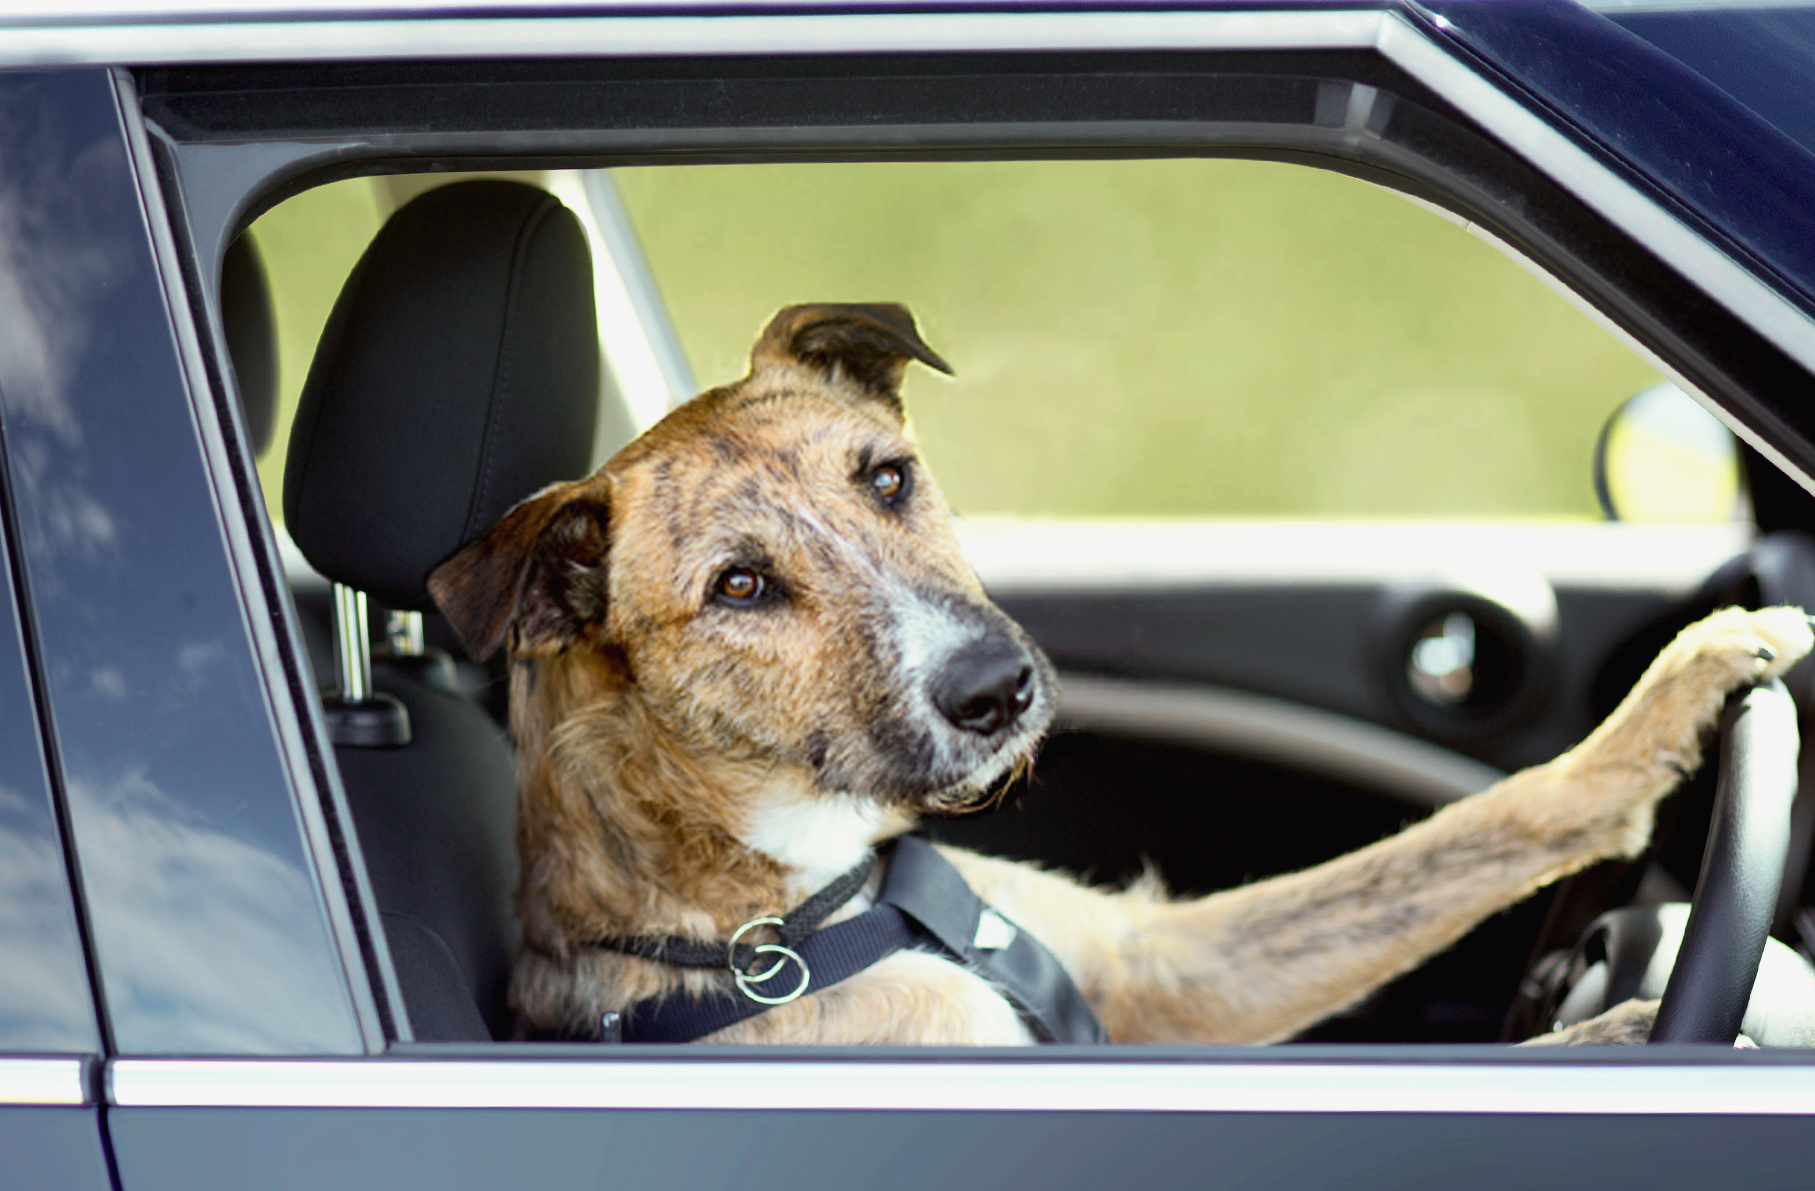 Dog Gets So Pissed Off With Owner For Leaving Him In Car He Crashes Think I Pics Driving